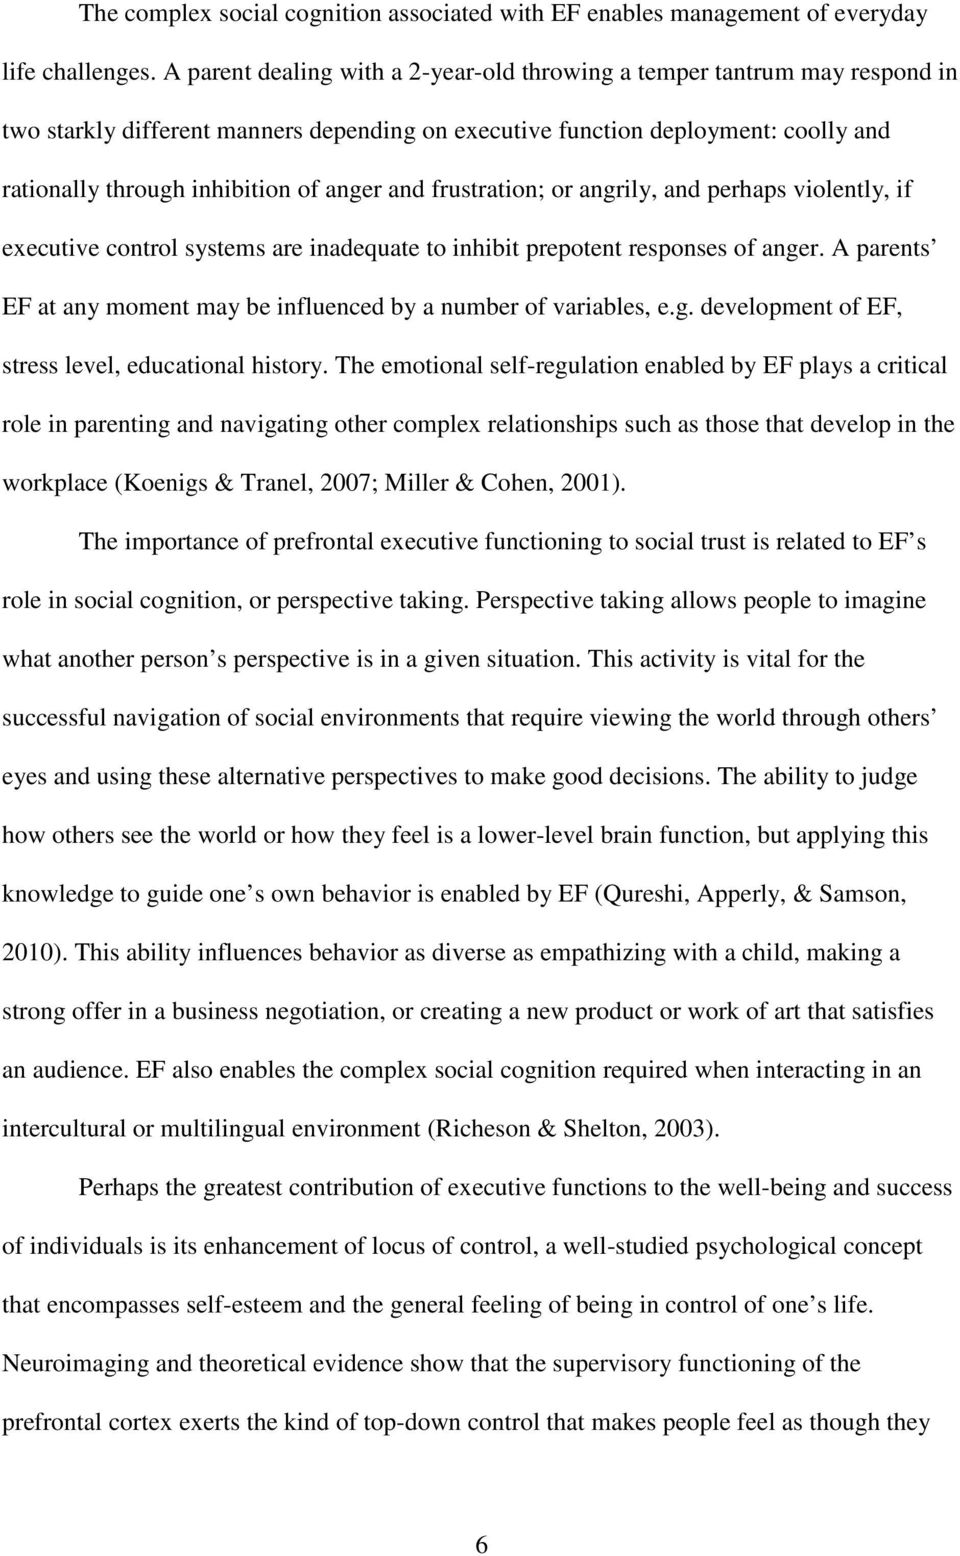 and frustration; or angrily, and perhaps violently, if executive control systems are inadequate to inhibit prepotent responses of anger.